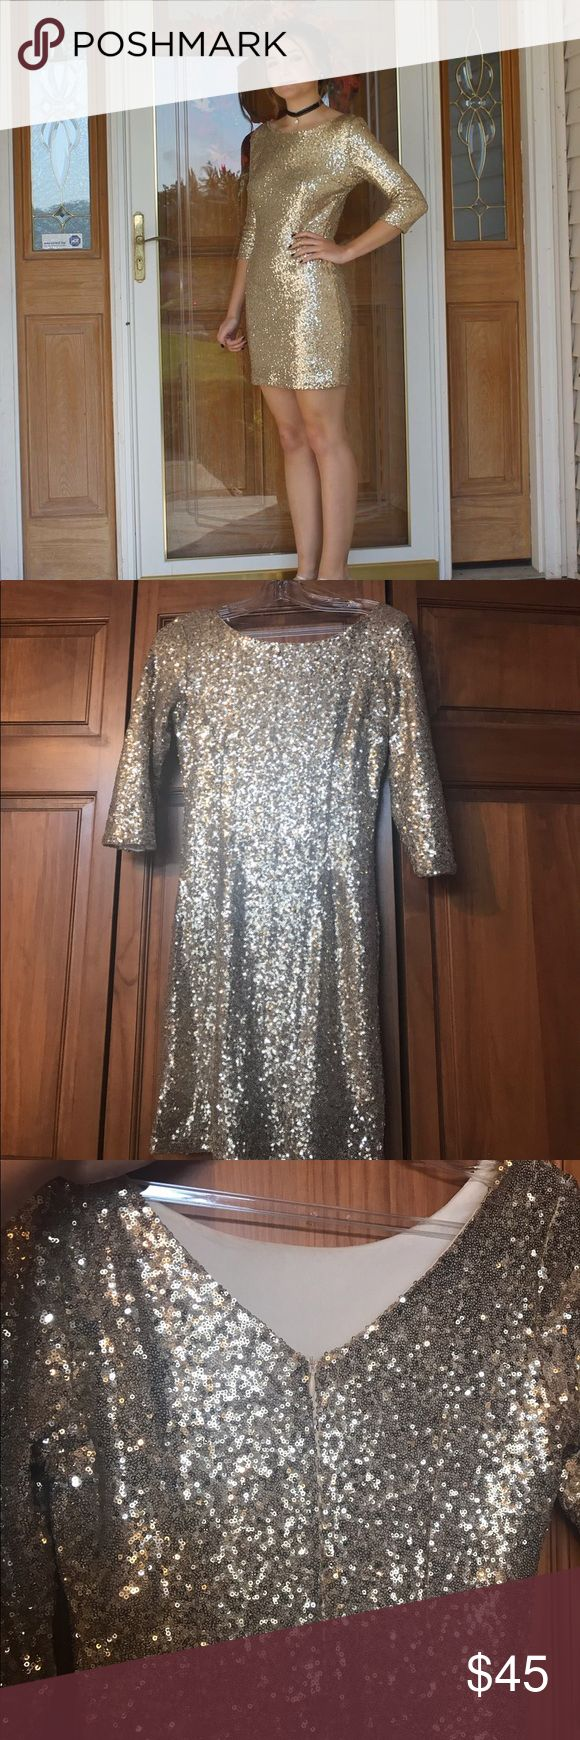 Gold Cocktail Dress Only worn once at my homecoming. This dress is very stunning and makes your eyes sparkle. It sparkles in every room. My boyfriend said he was blinded when I walked in..lol! This dress accentuates your curves and is fun to dance in. Very cute for almost any occasion! Dresses Mini